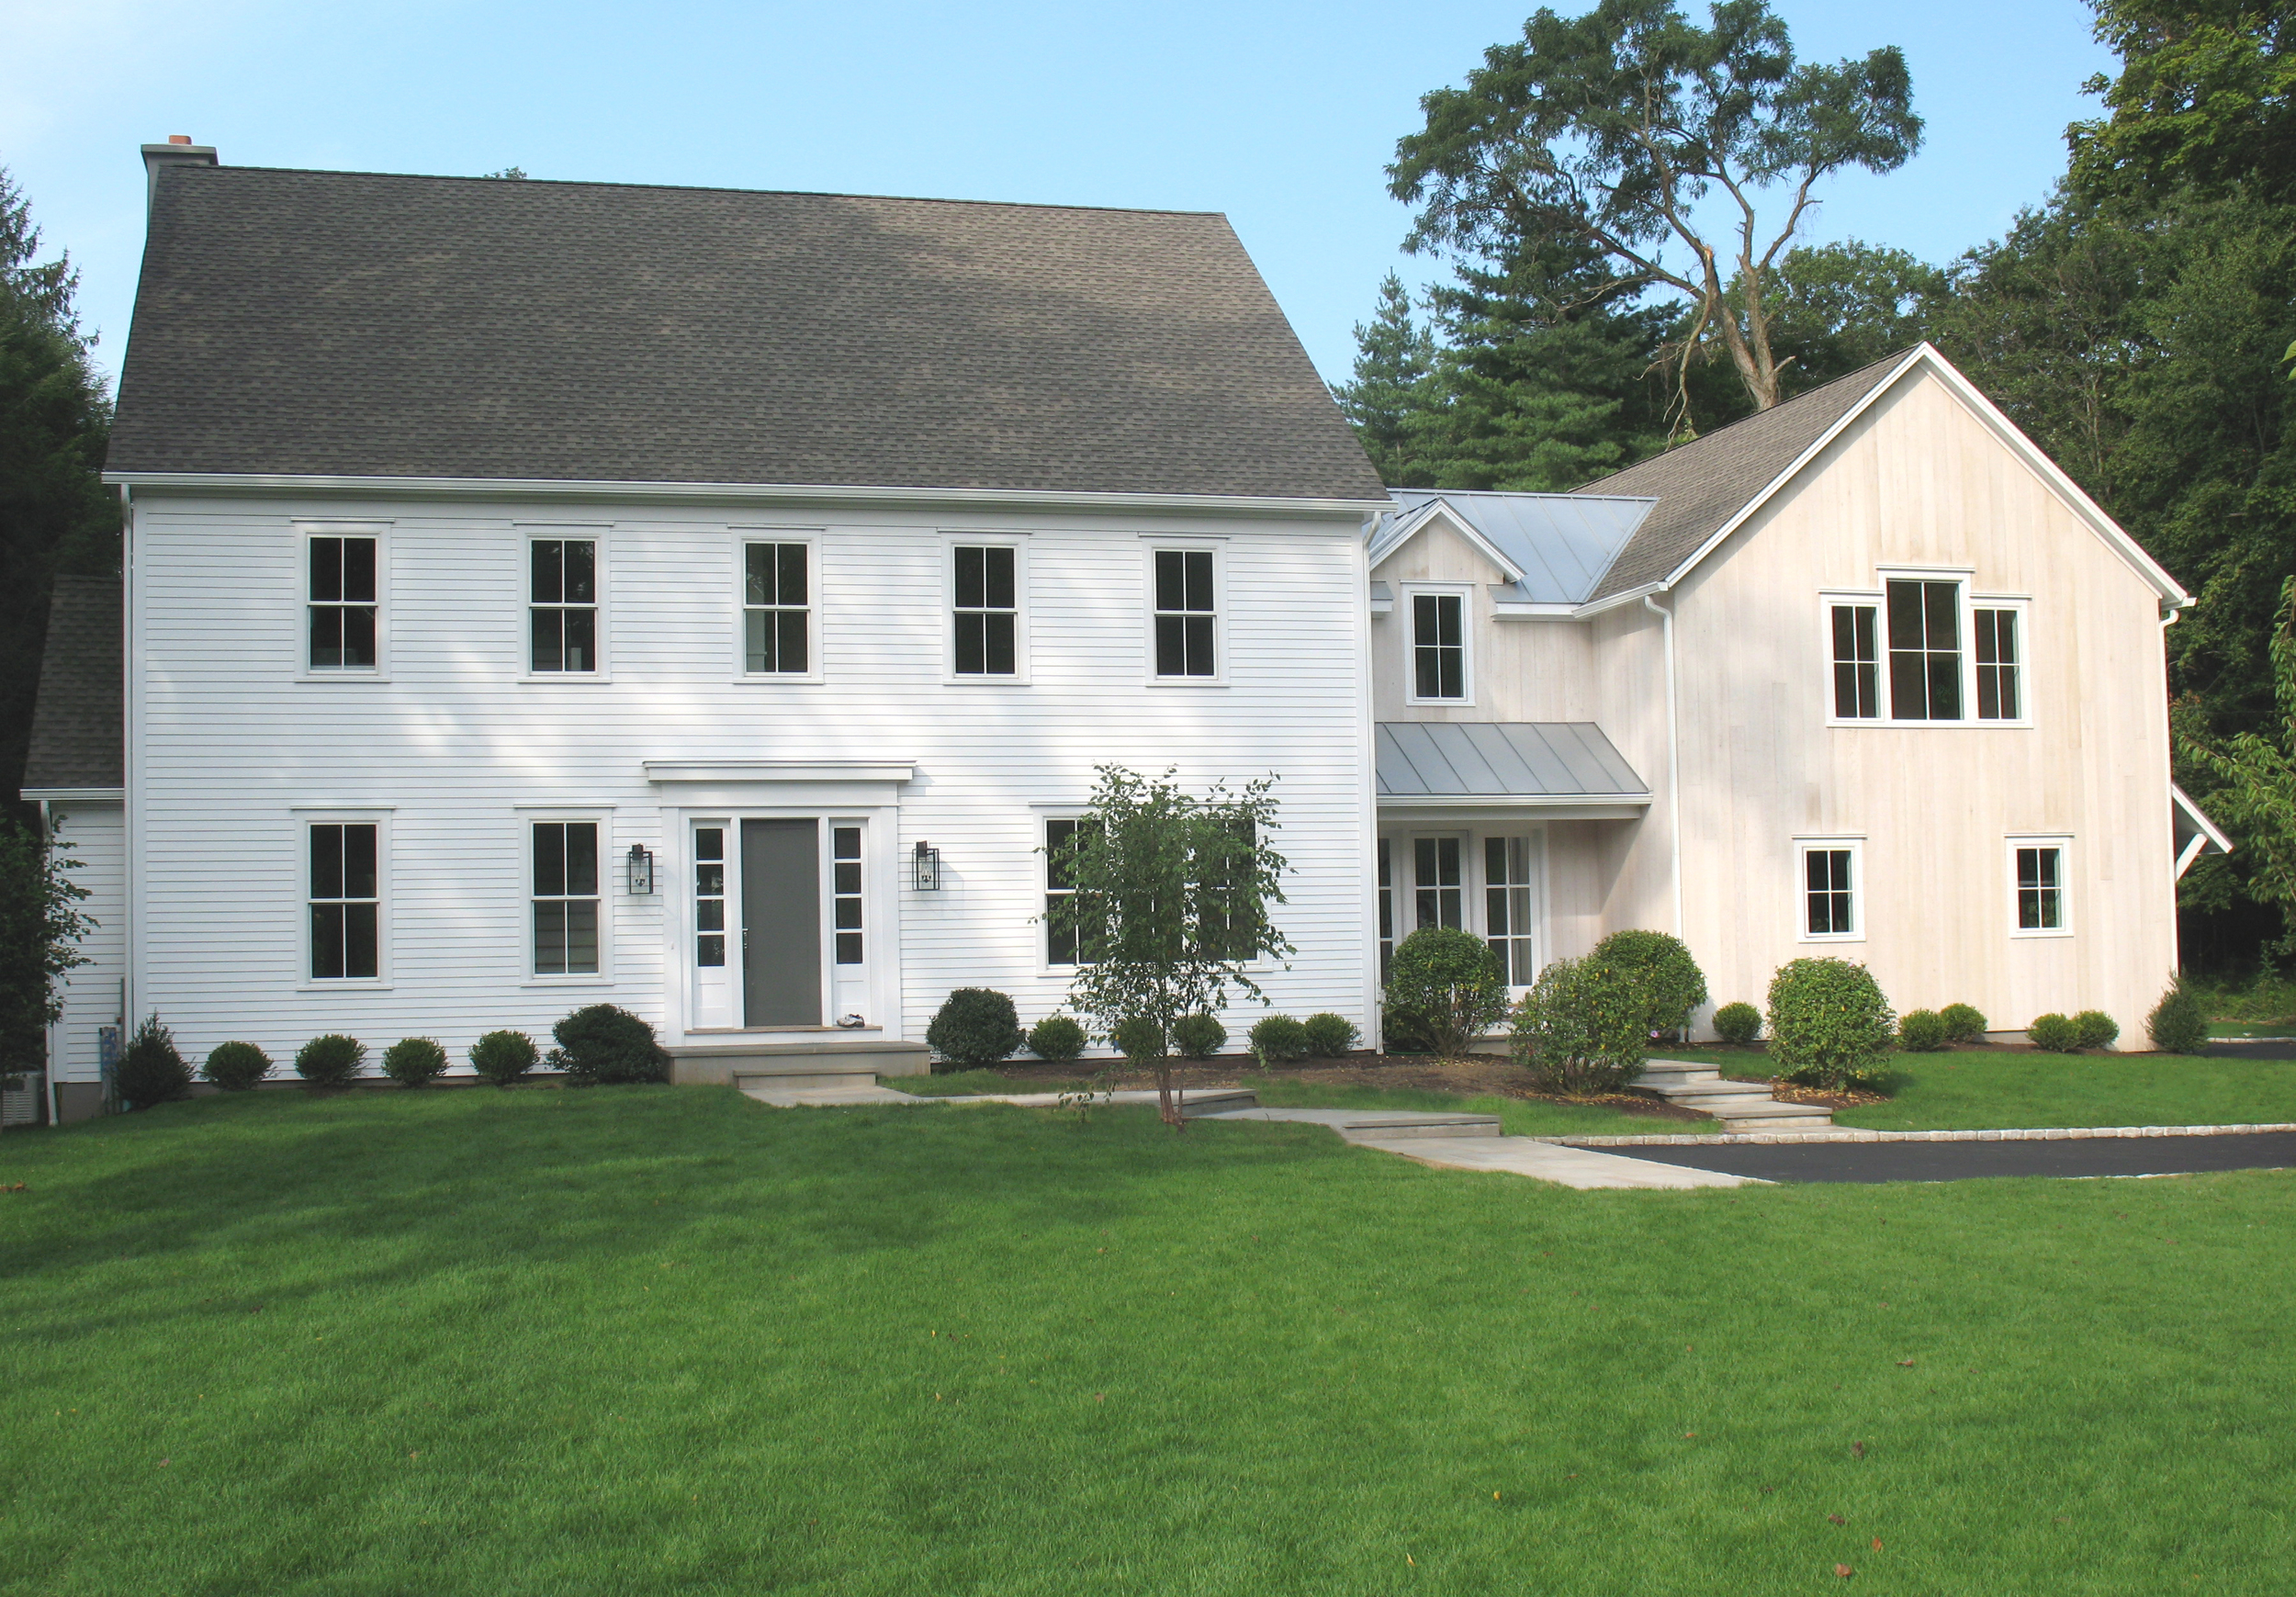 Marybeth Woods Architect  4 Ferry Lane E  Westport CT 06880  203-227-7263